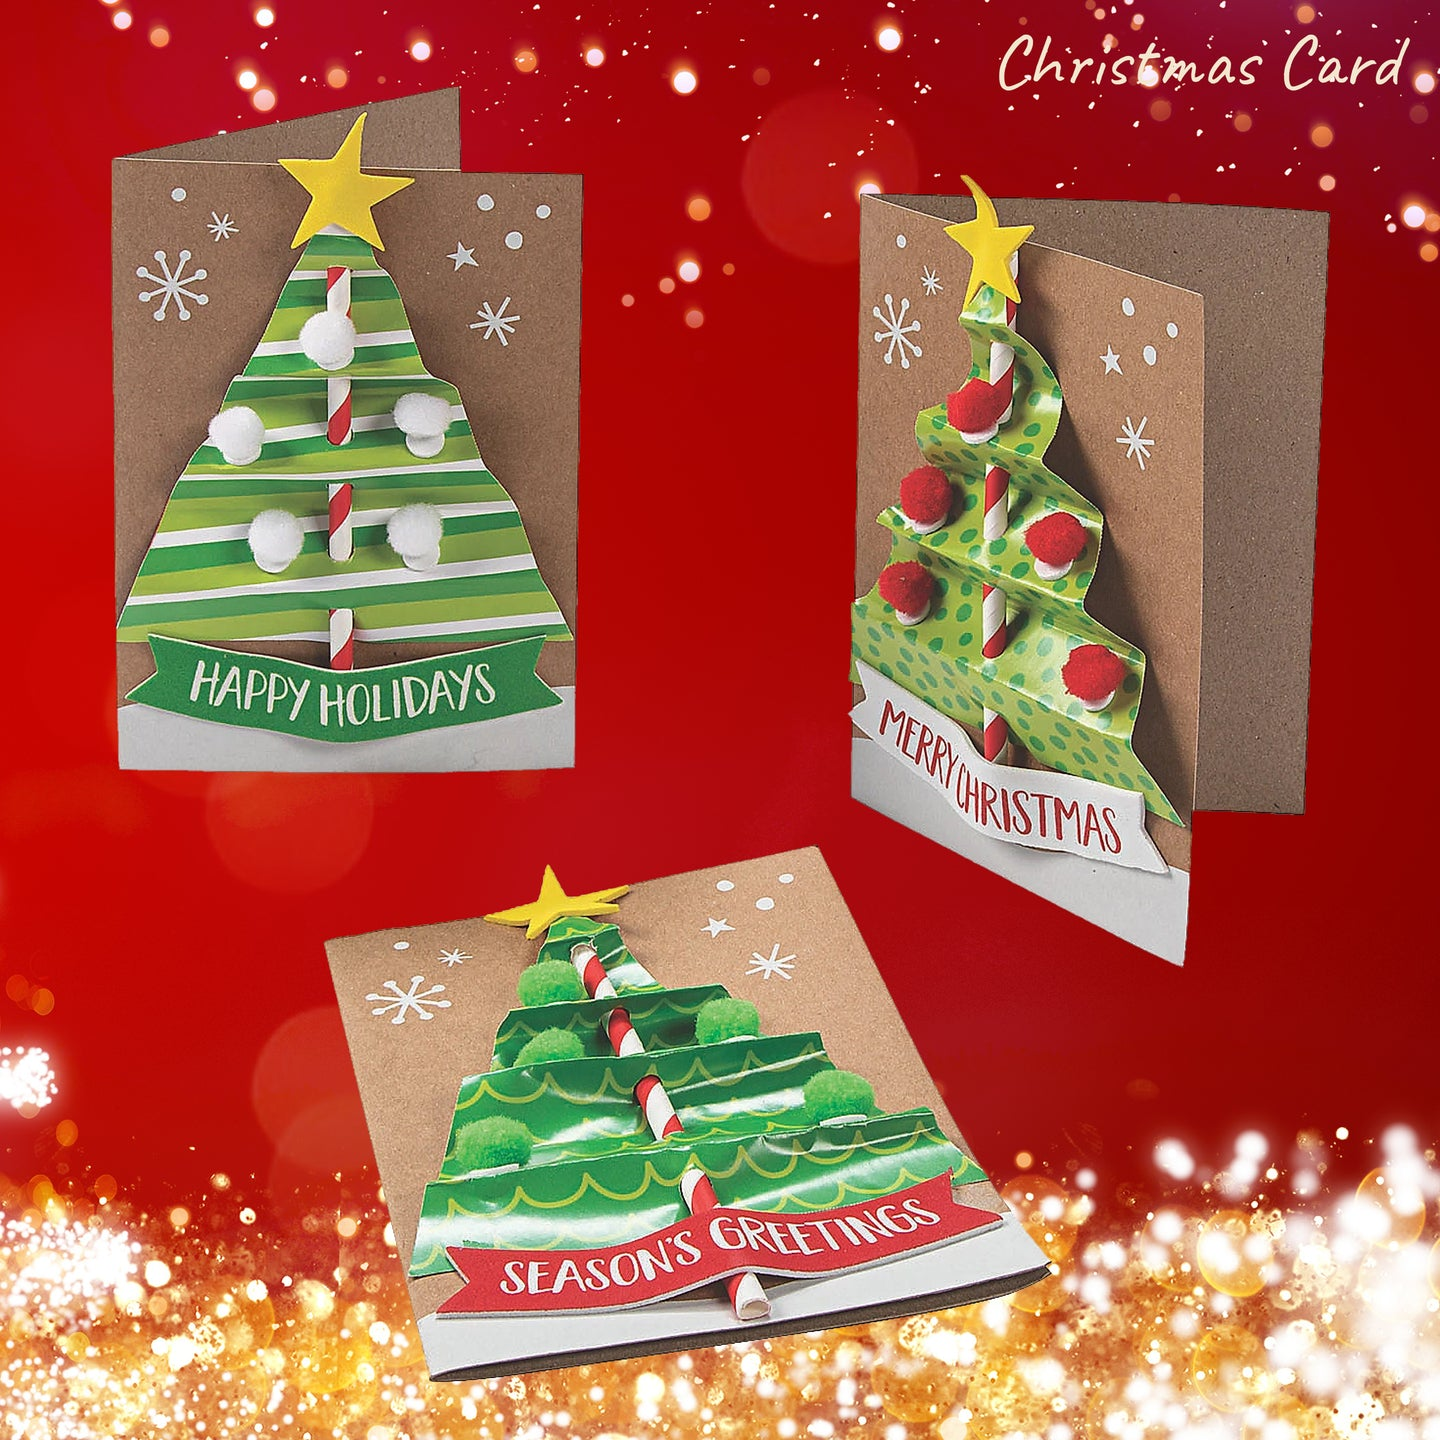 Christmas Tree DIY Craft Kit (Pack of 1, 2 or 12 kits)